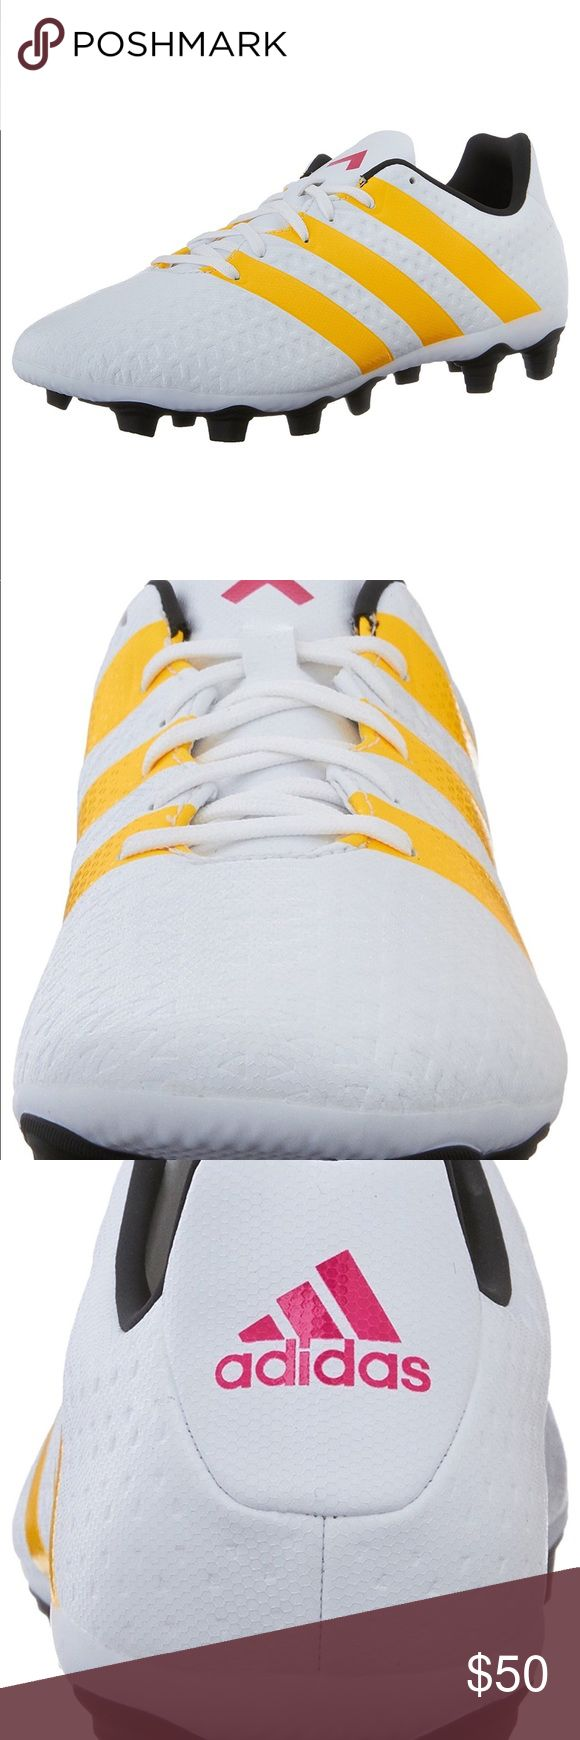 New Adidas Women Ace 16.4 FxG W NIB WHT/GLD/BLK These women's soccer cleats are made for the player who never gives her opponents even a hint of a chance. A soft synthetic upper improves every touch. Designed for hard ground and artificial and natural grass. adidas Shoes Athletic Shoes